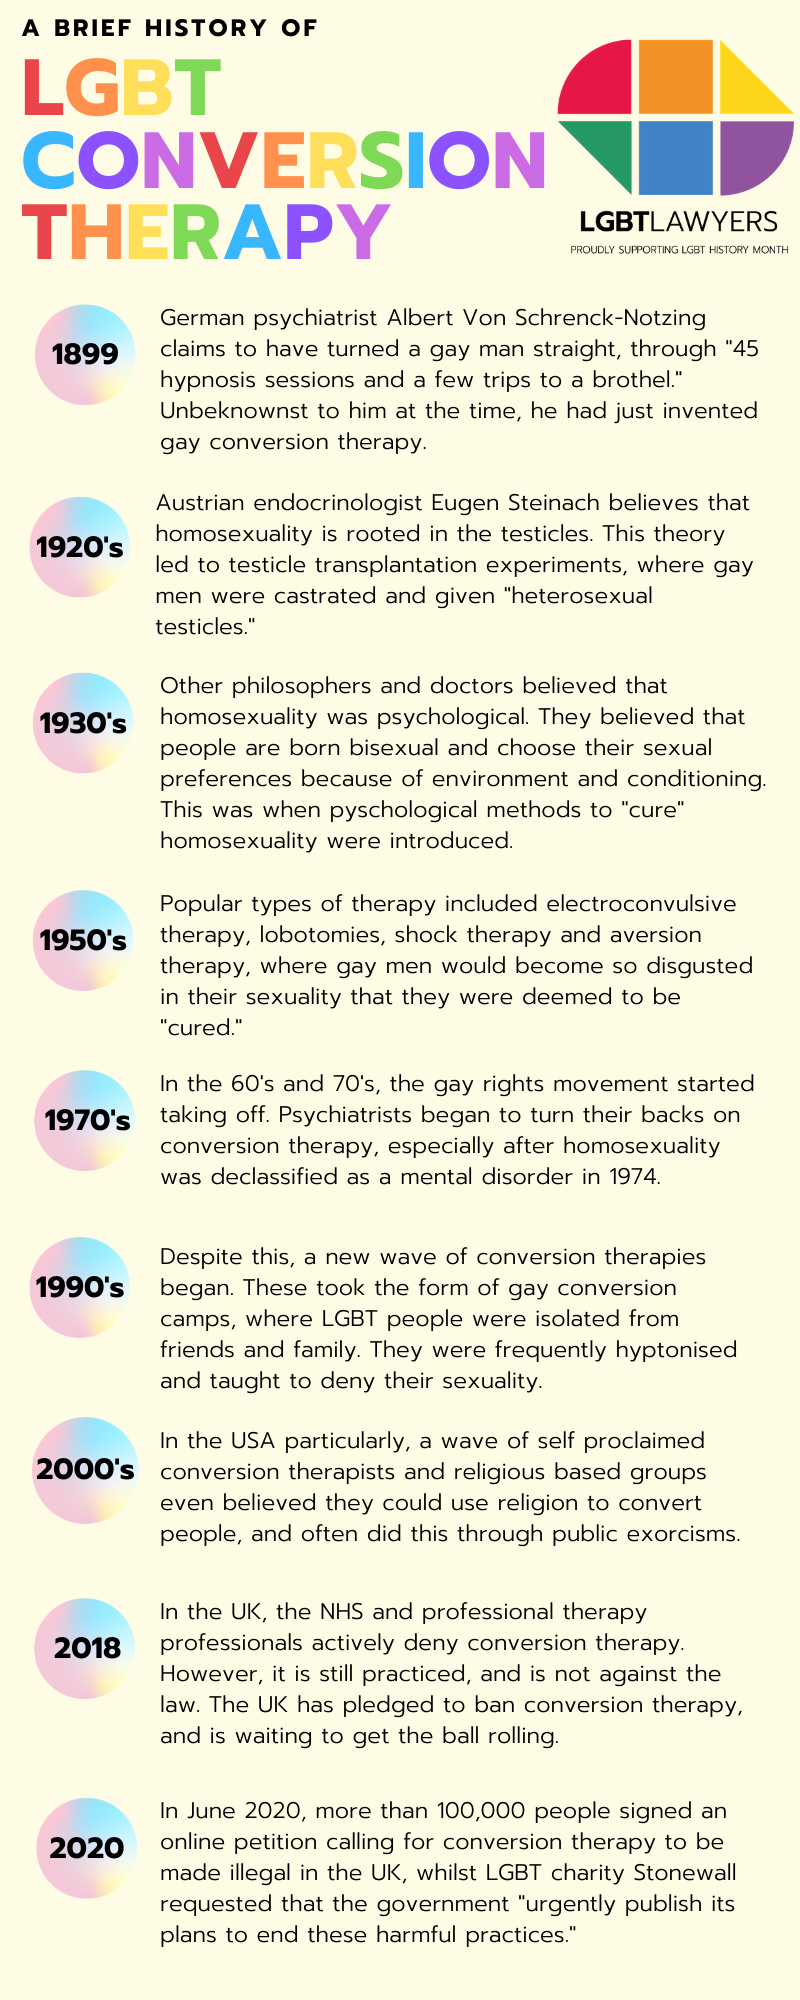 LGBT CONVERSION THERAPY (2)